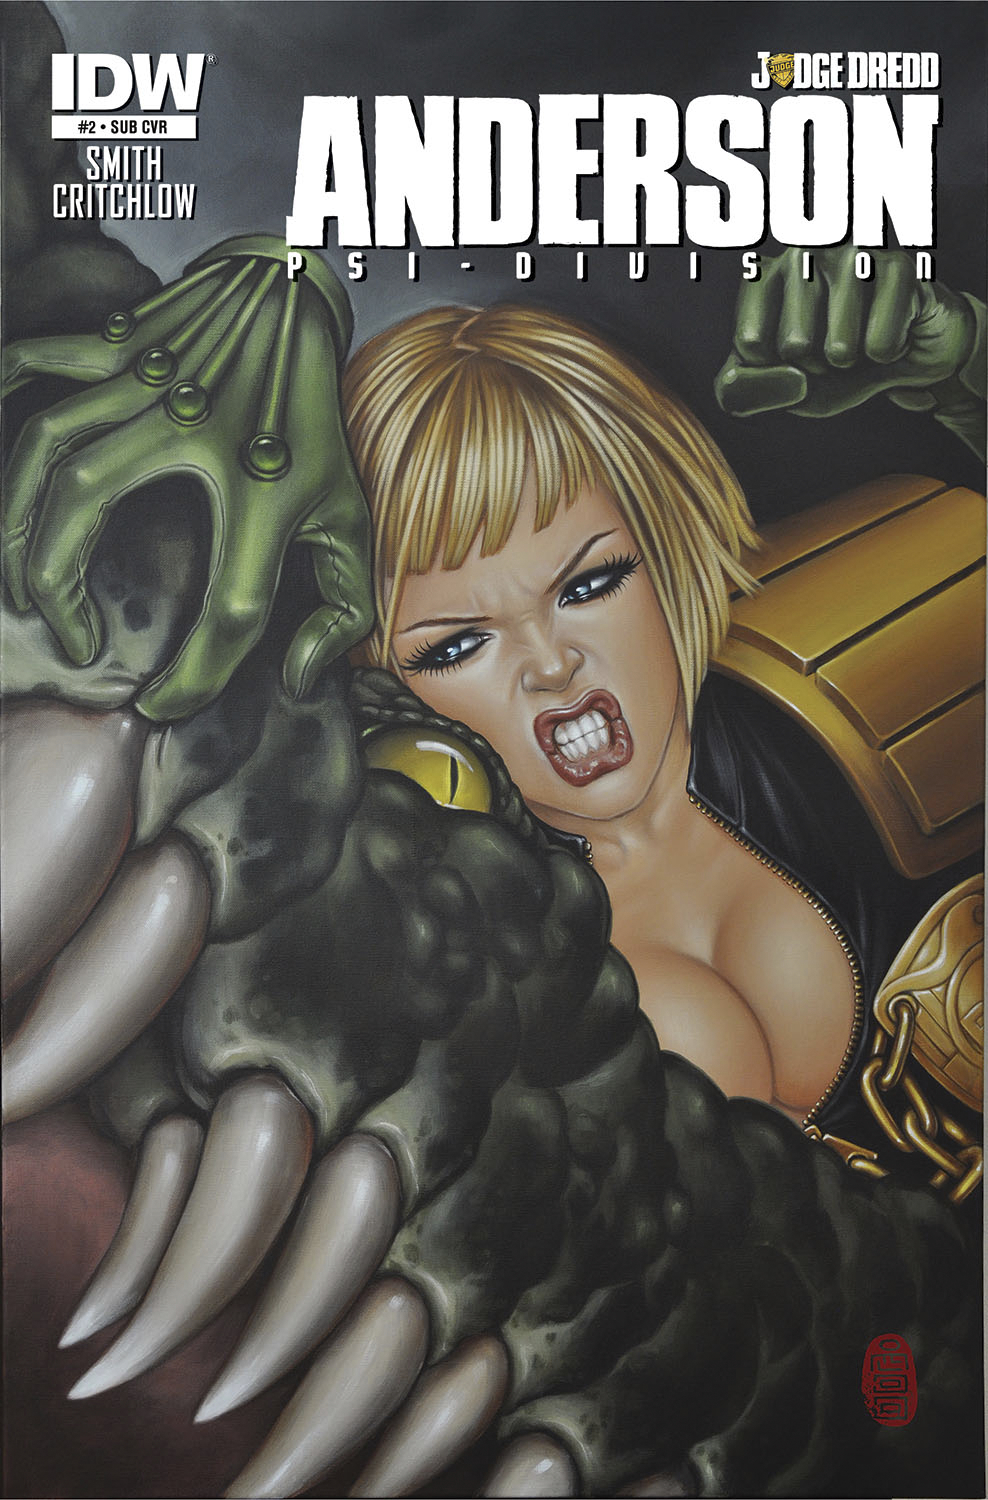 JUDGE DREDD ANDERSON PSI DIVISION #2 SUBSCRIPTION VAR